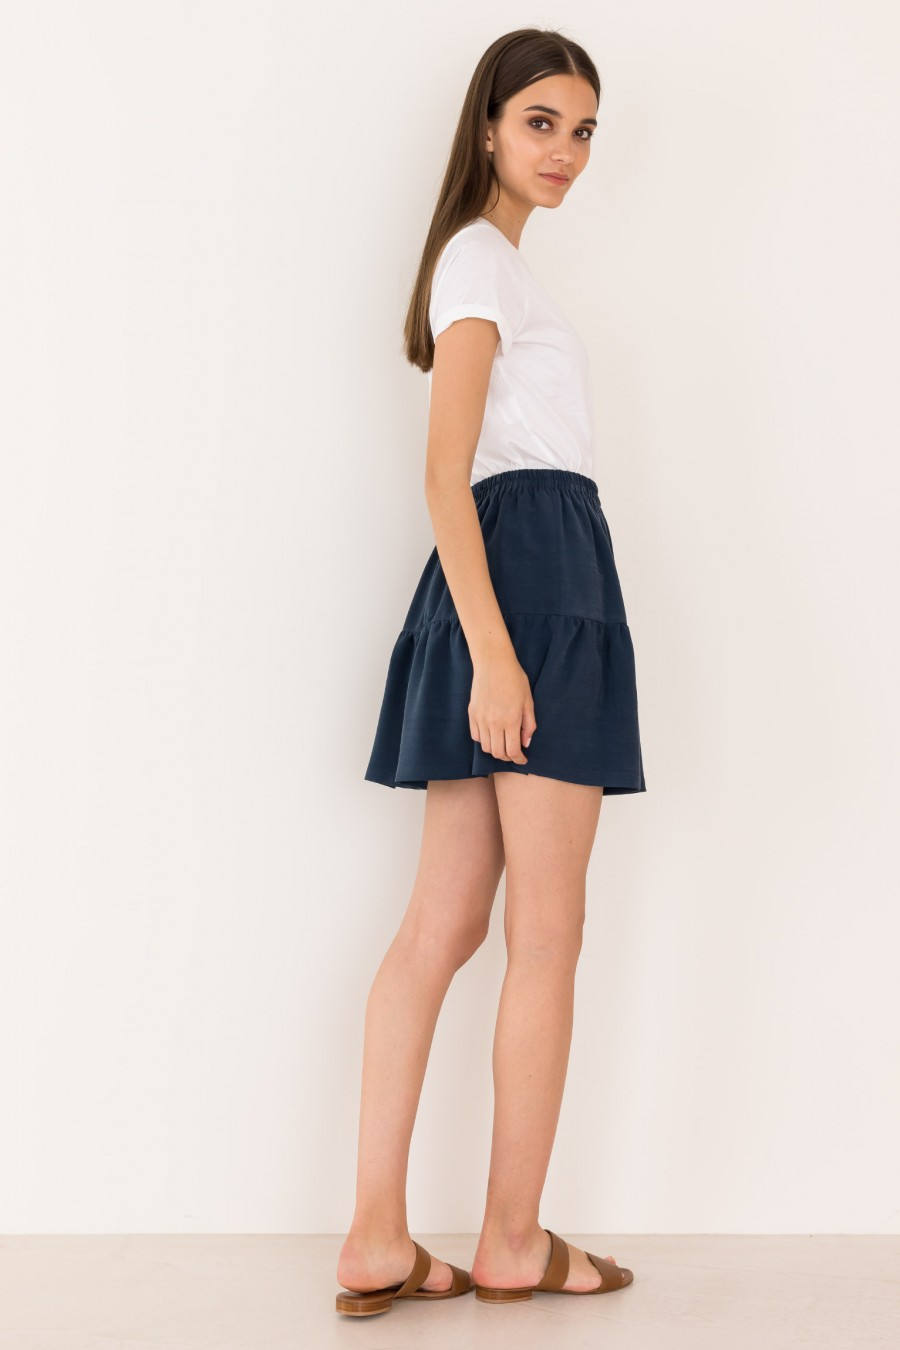 Blue skirt with ruffle